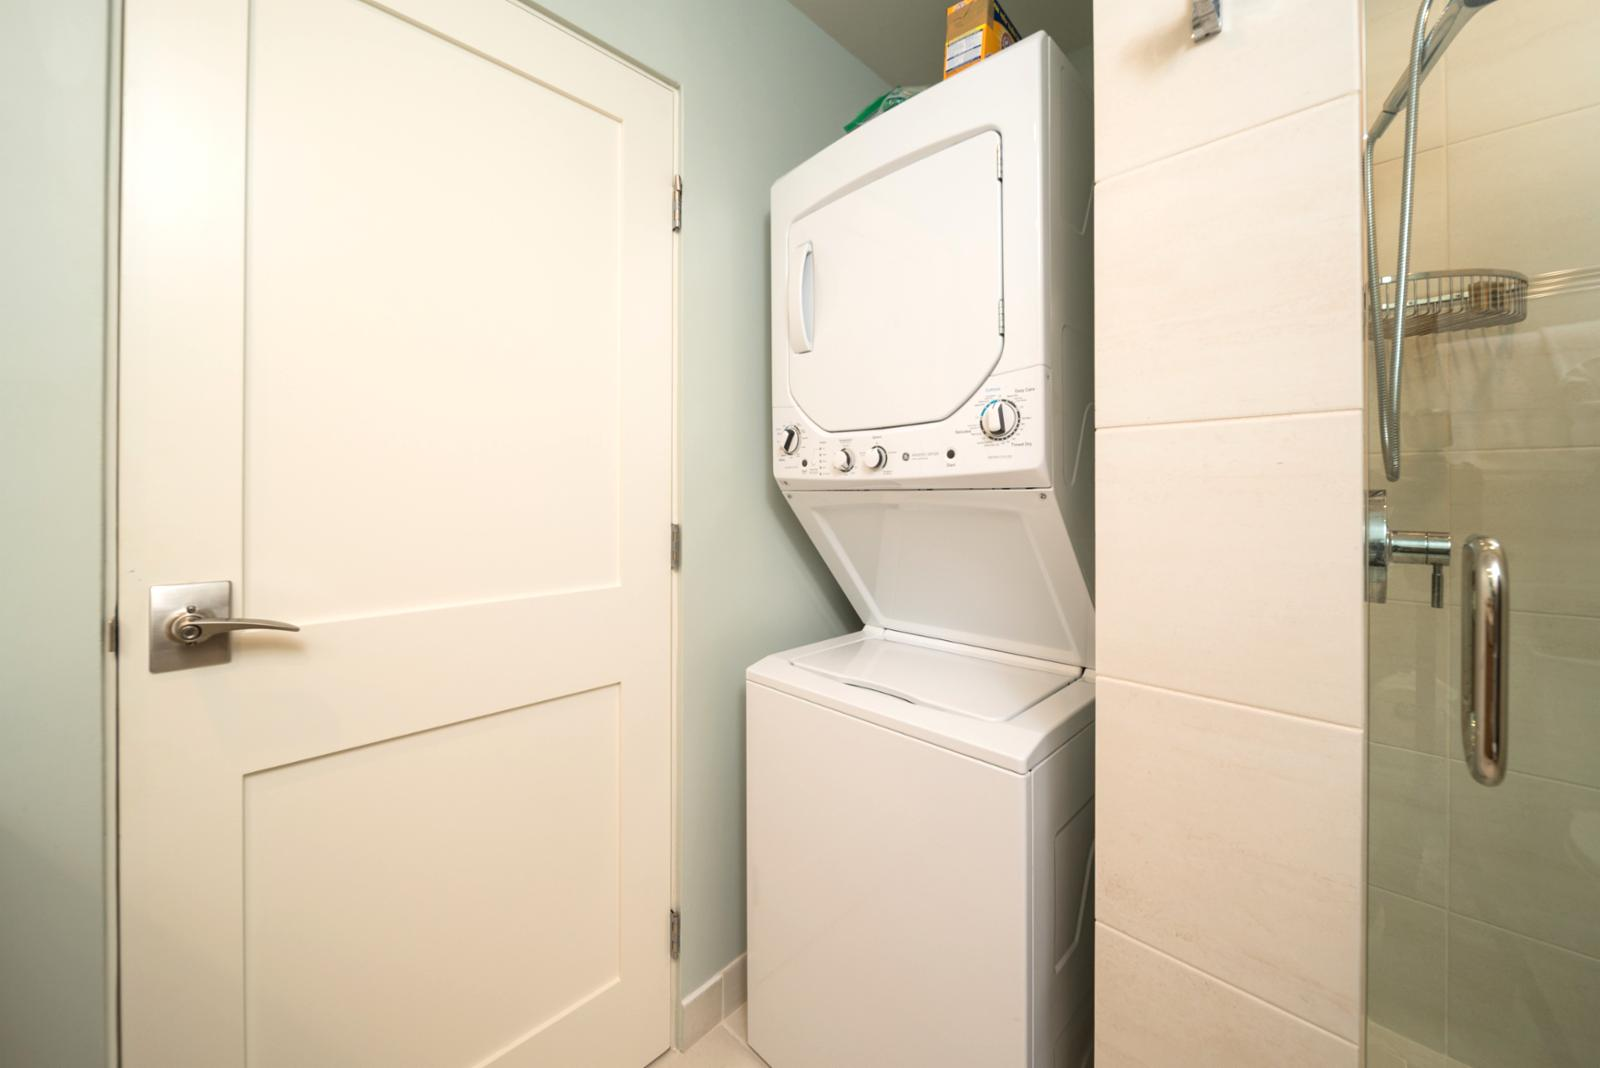 In unit ready for your use, fully stocked with amenities